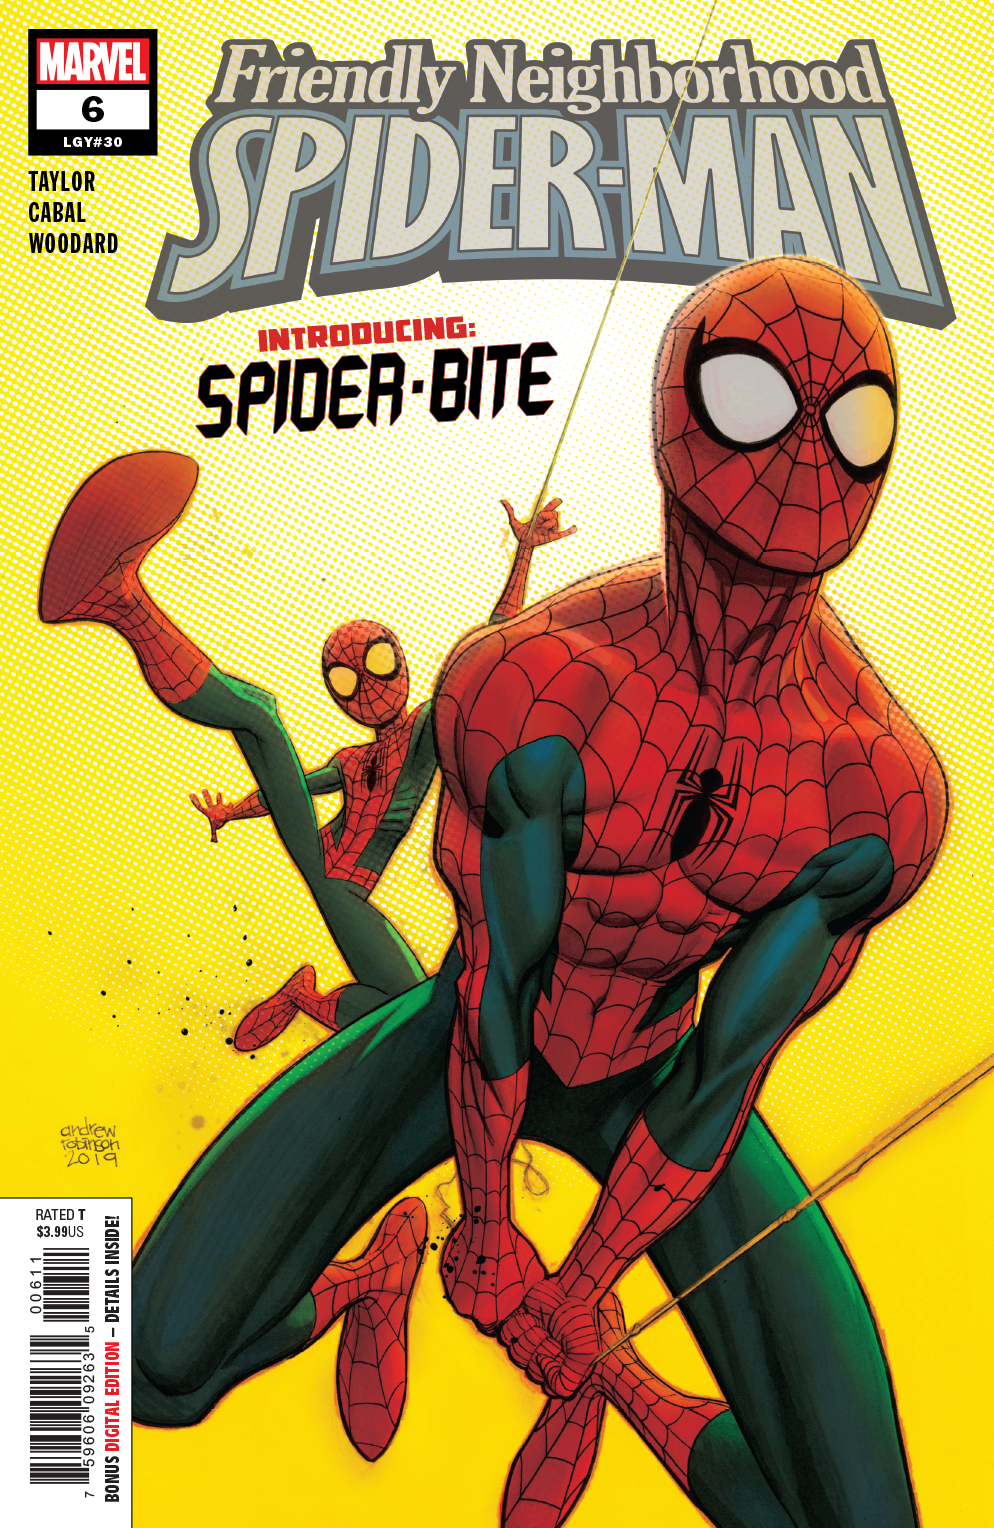 Friendly Neighborhood Spider-Man #6  is out 5/8/2019.